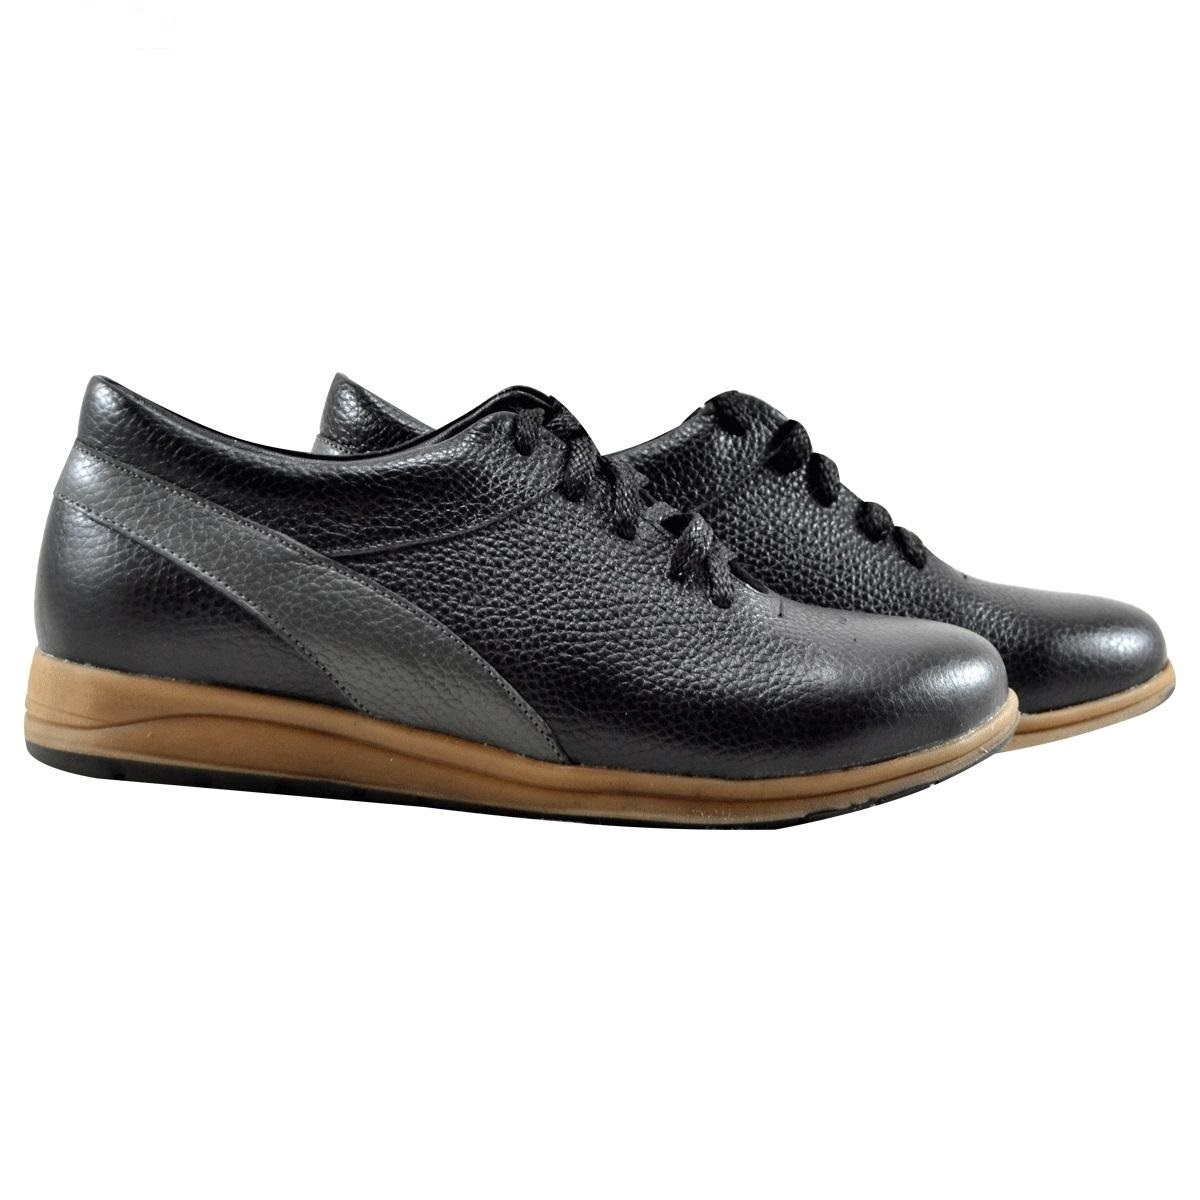 Sport Genuine Leather Lady Shoes